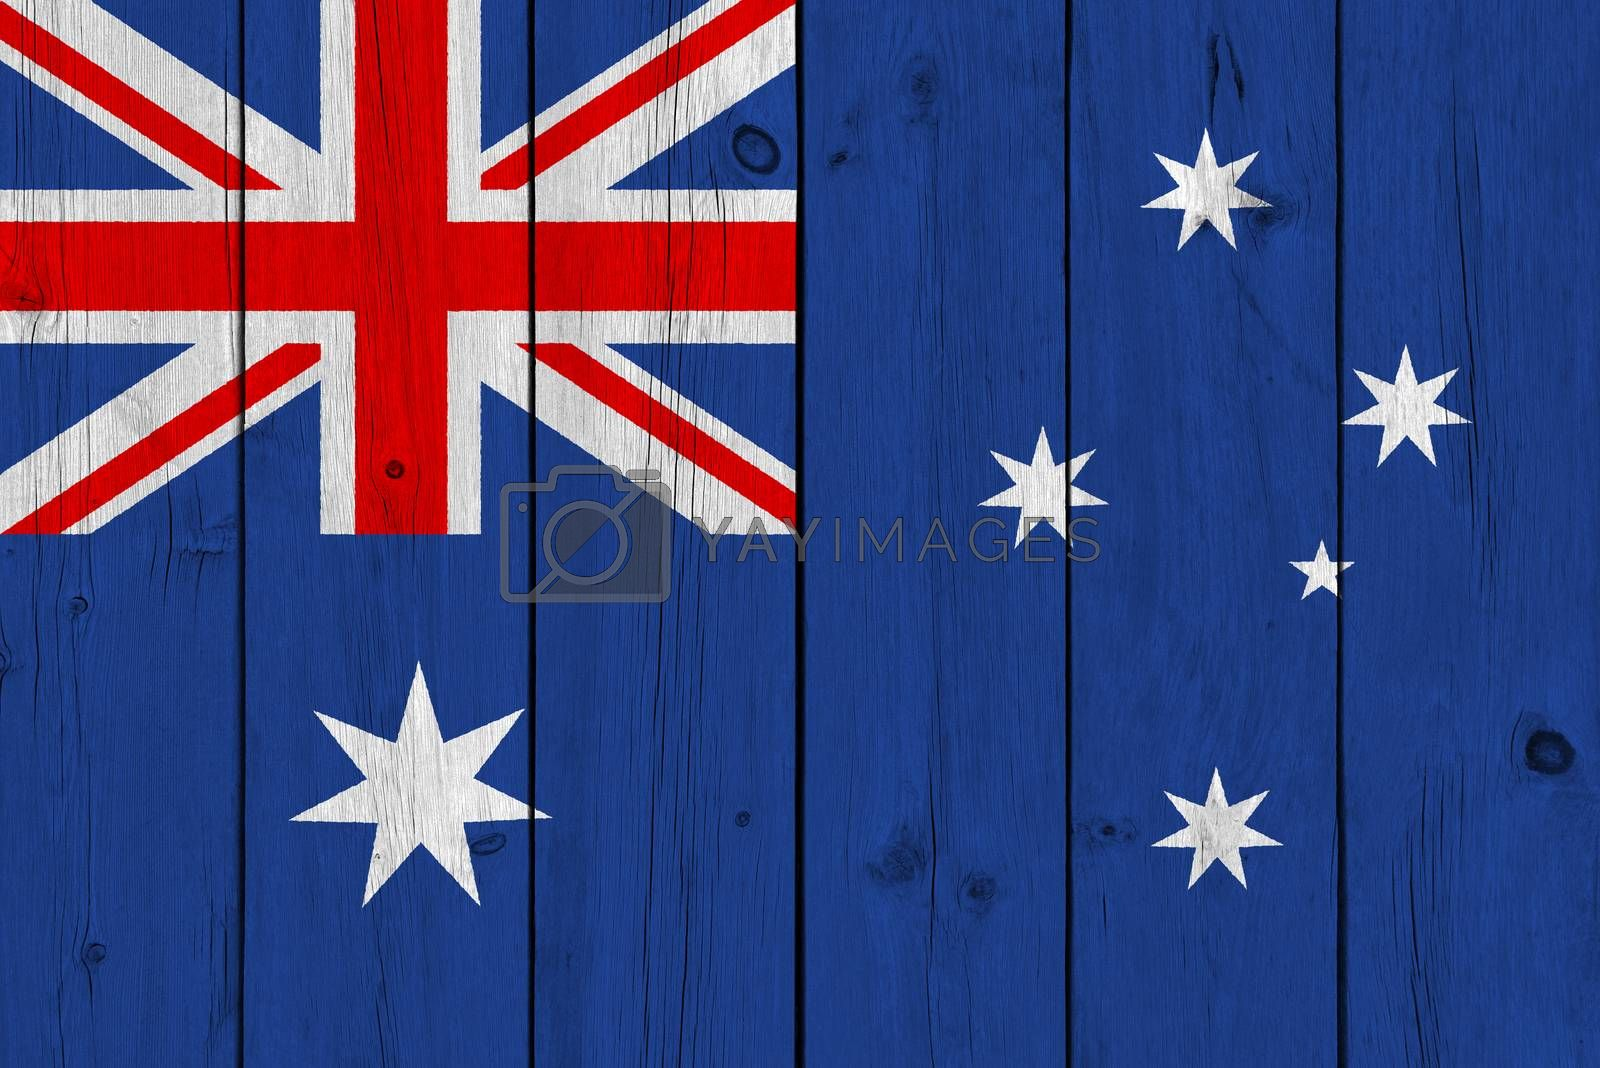 Australia flag painted on old wood plank. Patriotic background. National flag of Australia